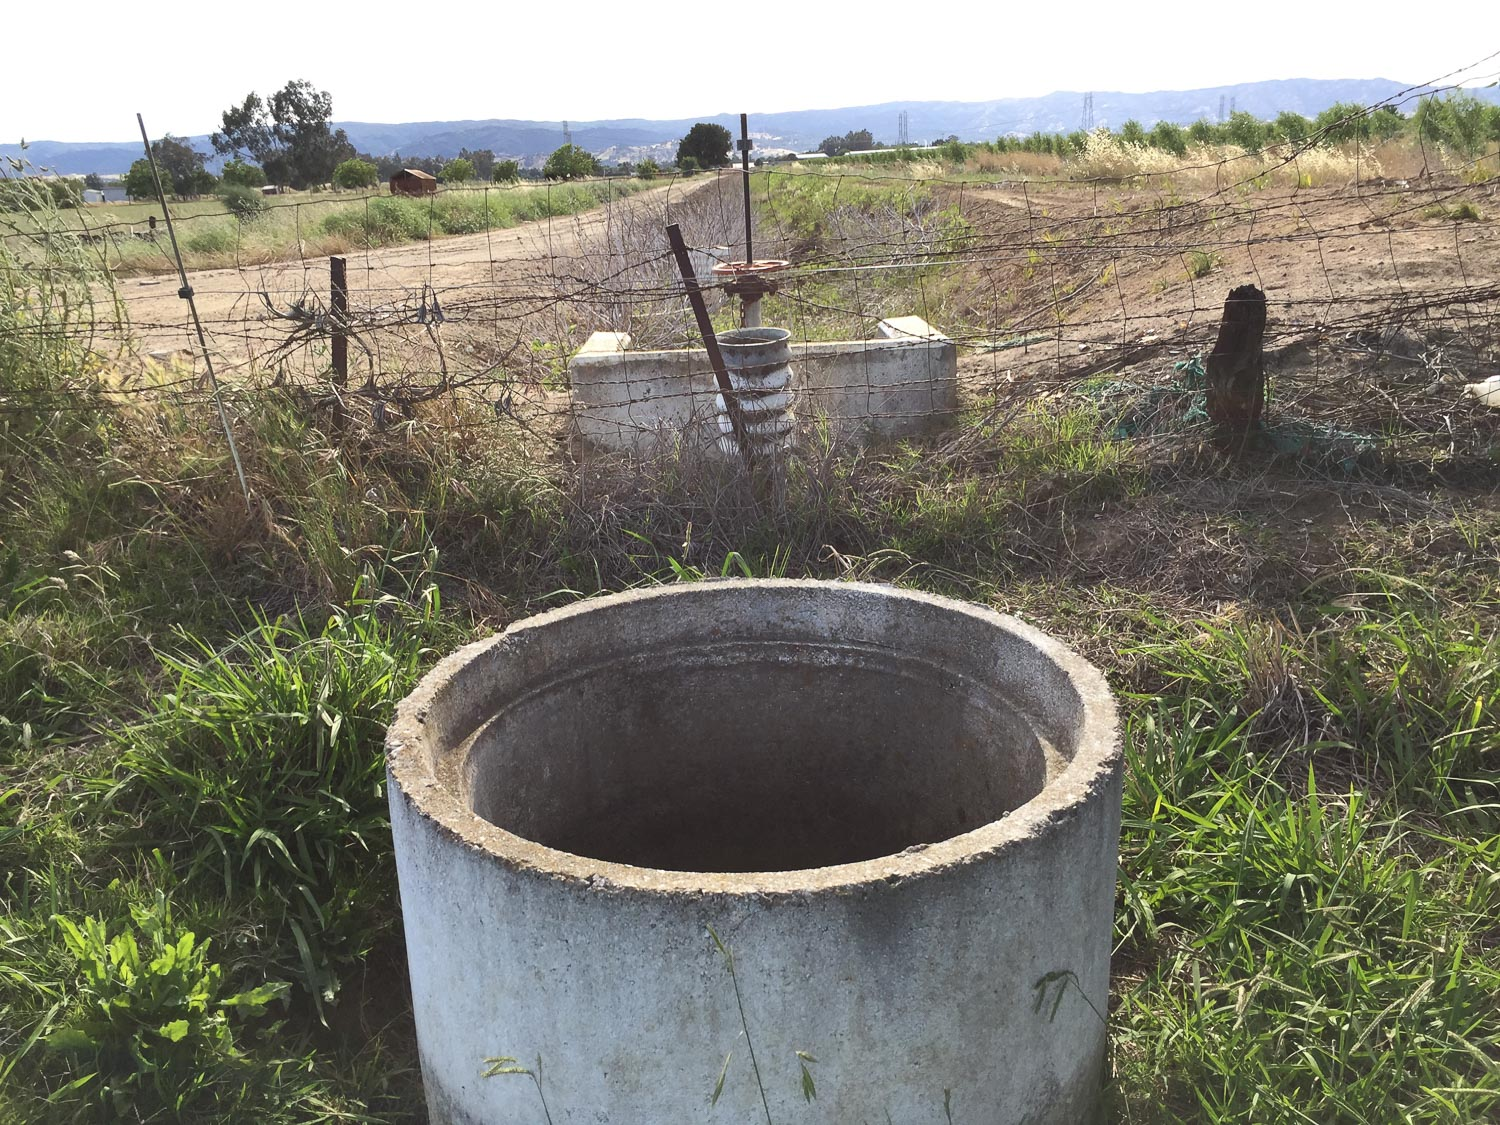 Stand pipe at corner of property